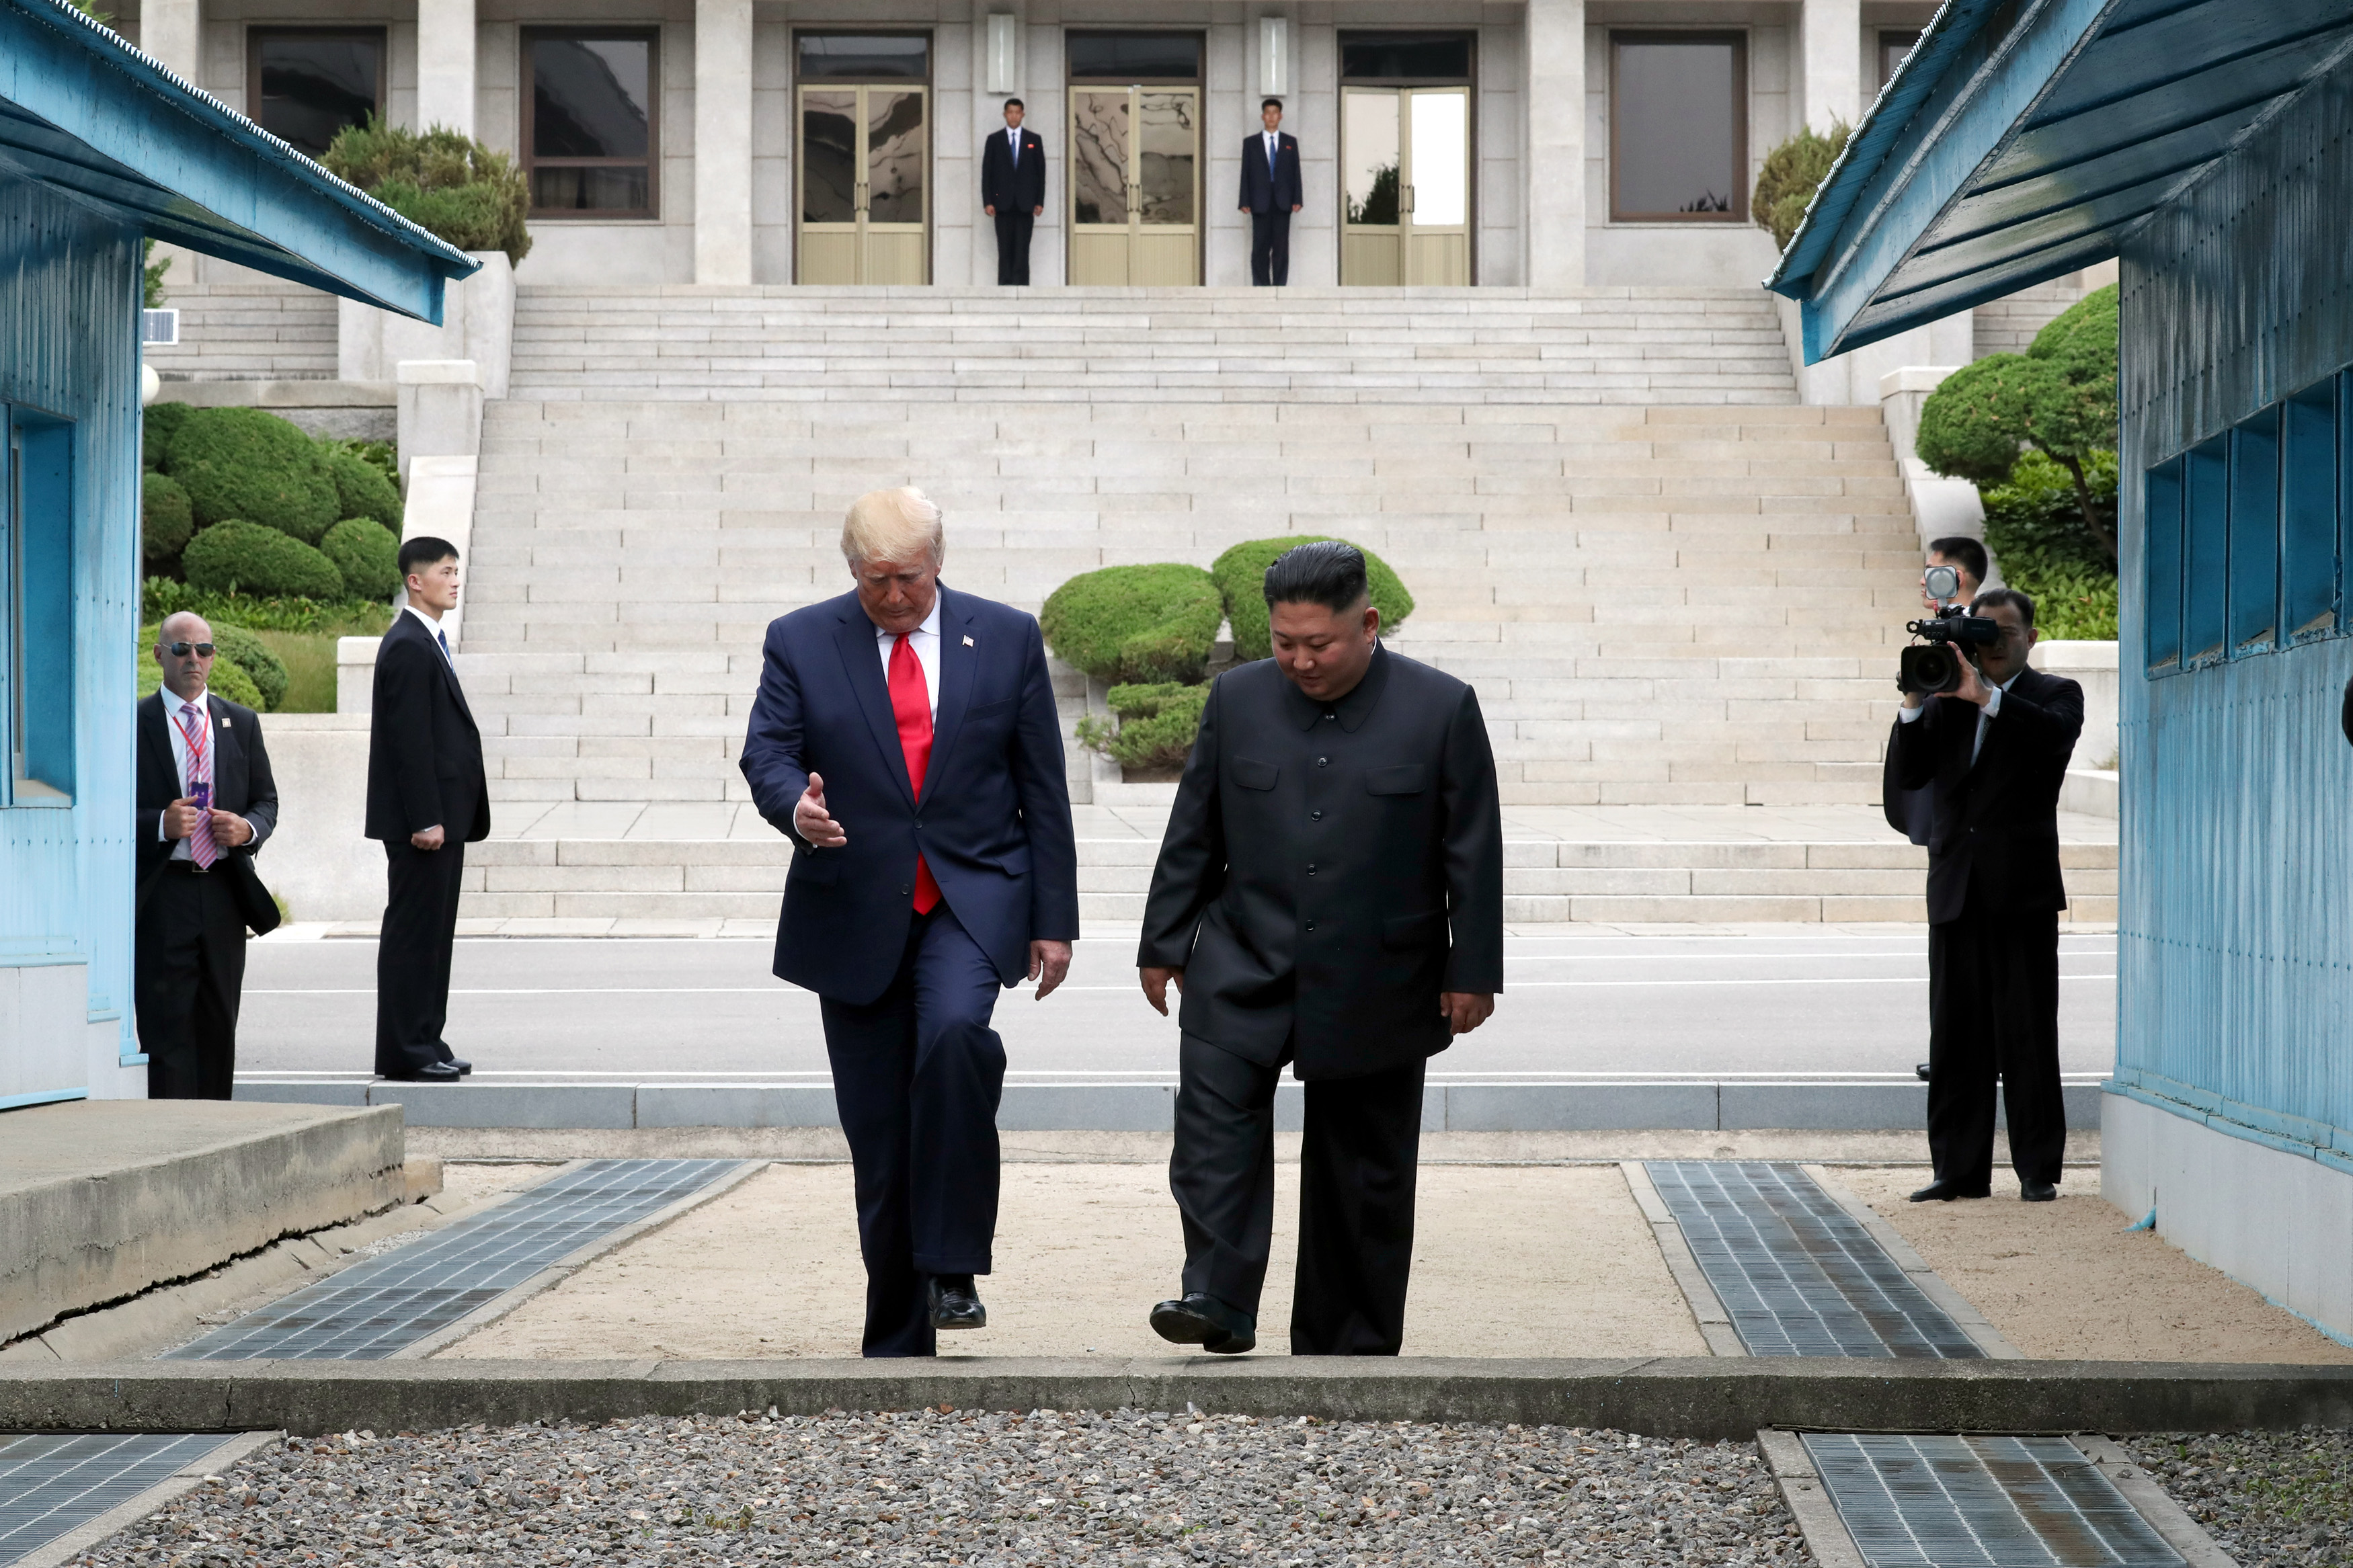 US President Donald Trump and North Korean leader Kim Jong Un at the DMZ.